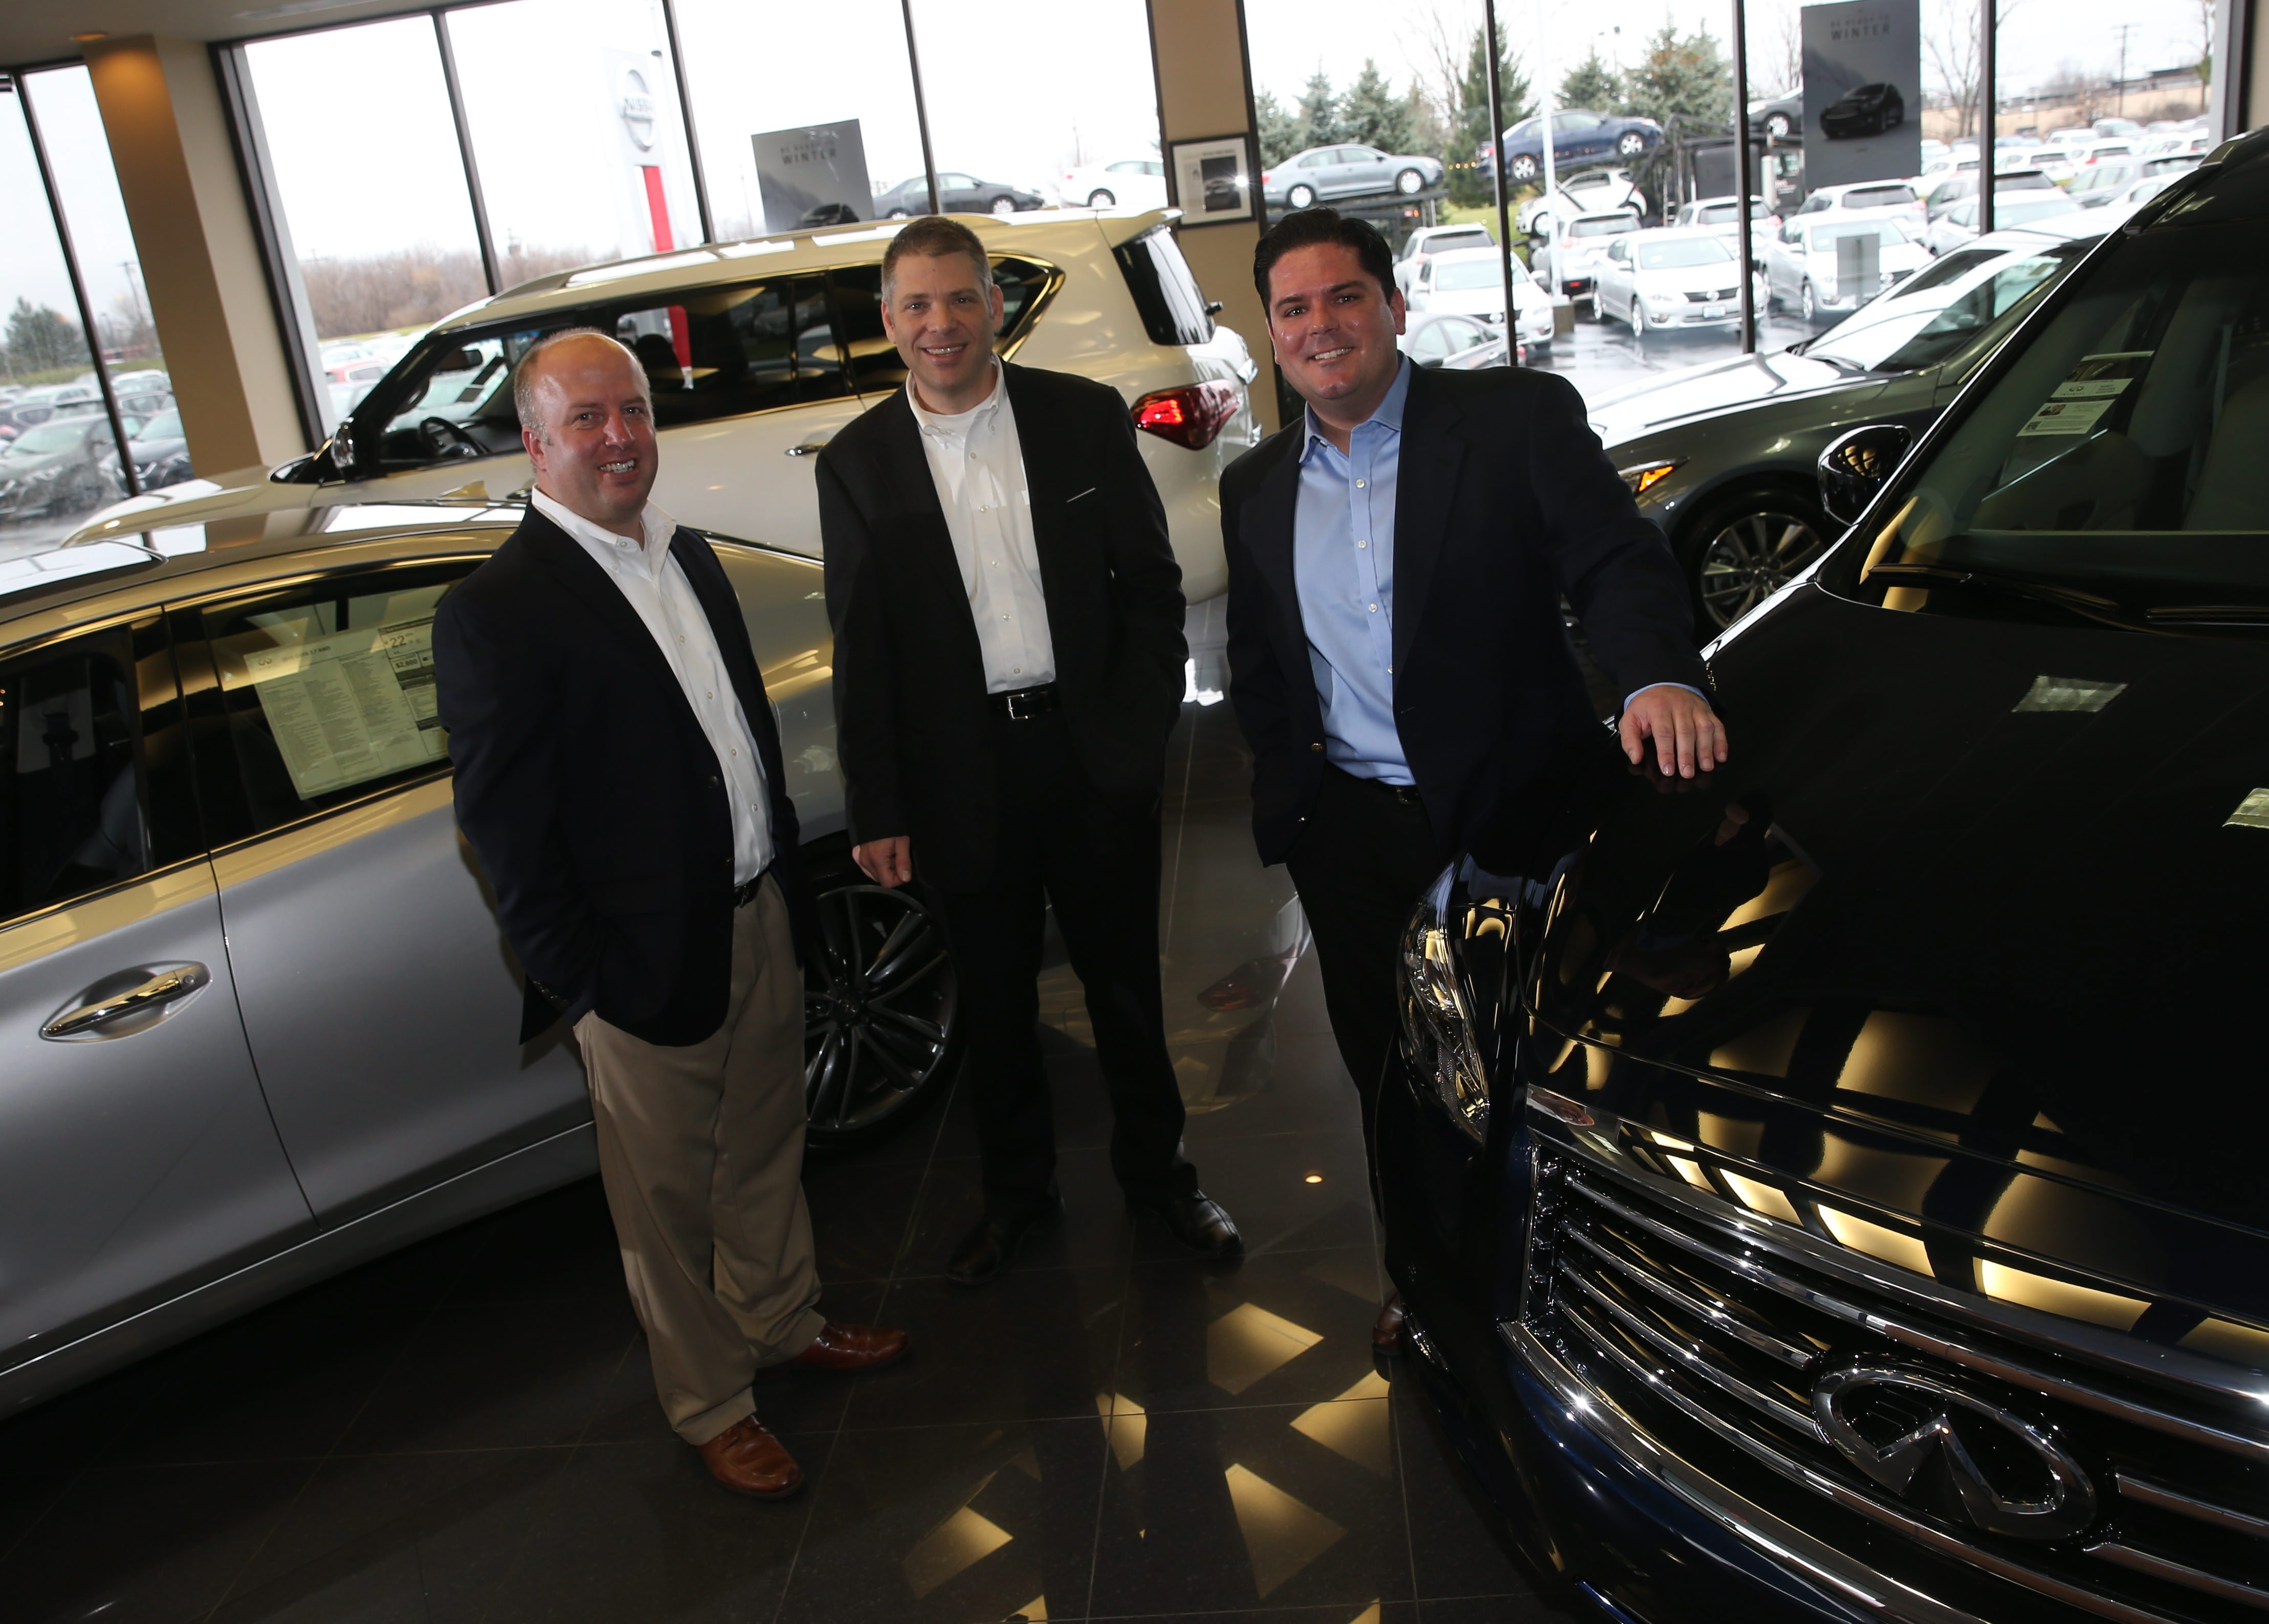 Auto dealer groups a dominant force in sales – The Buffalo News